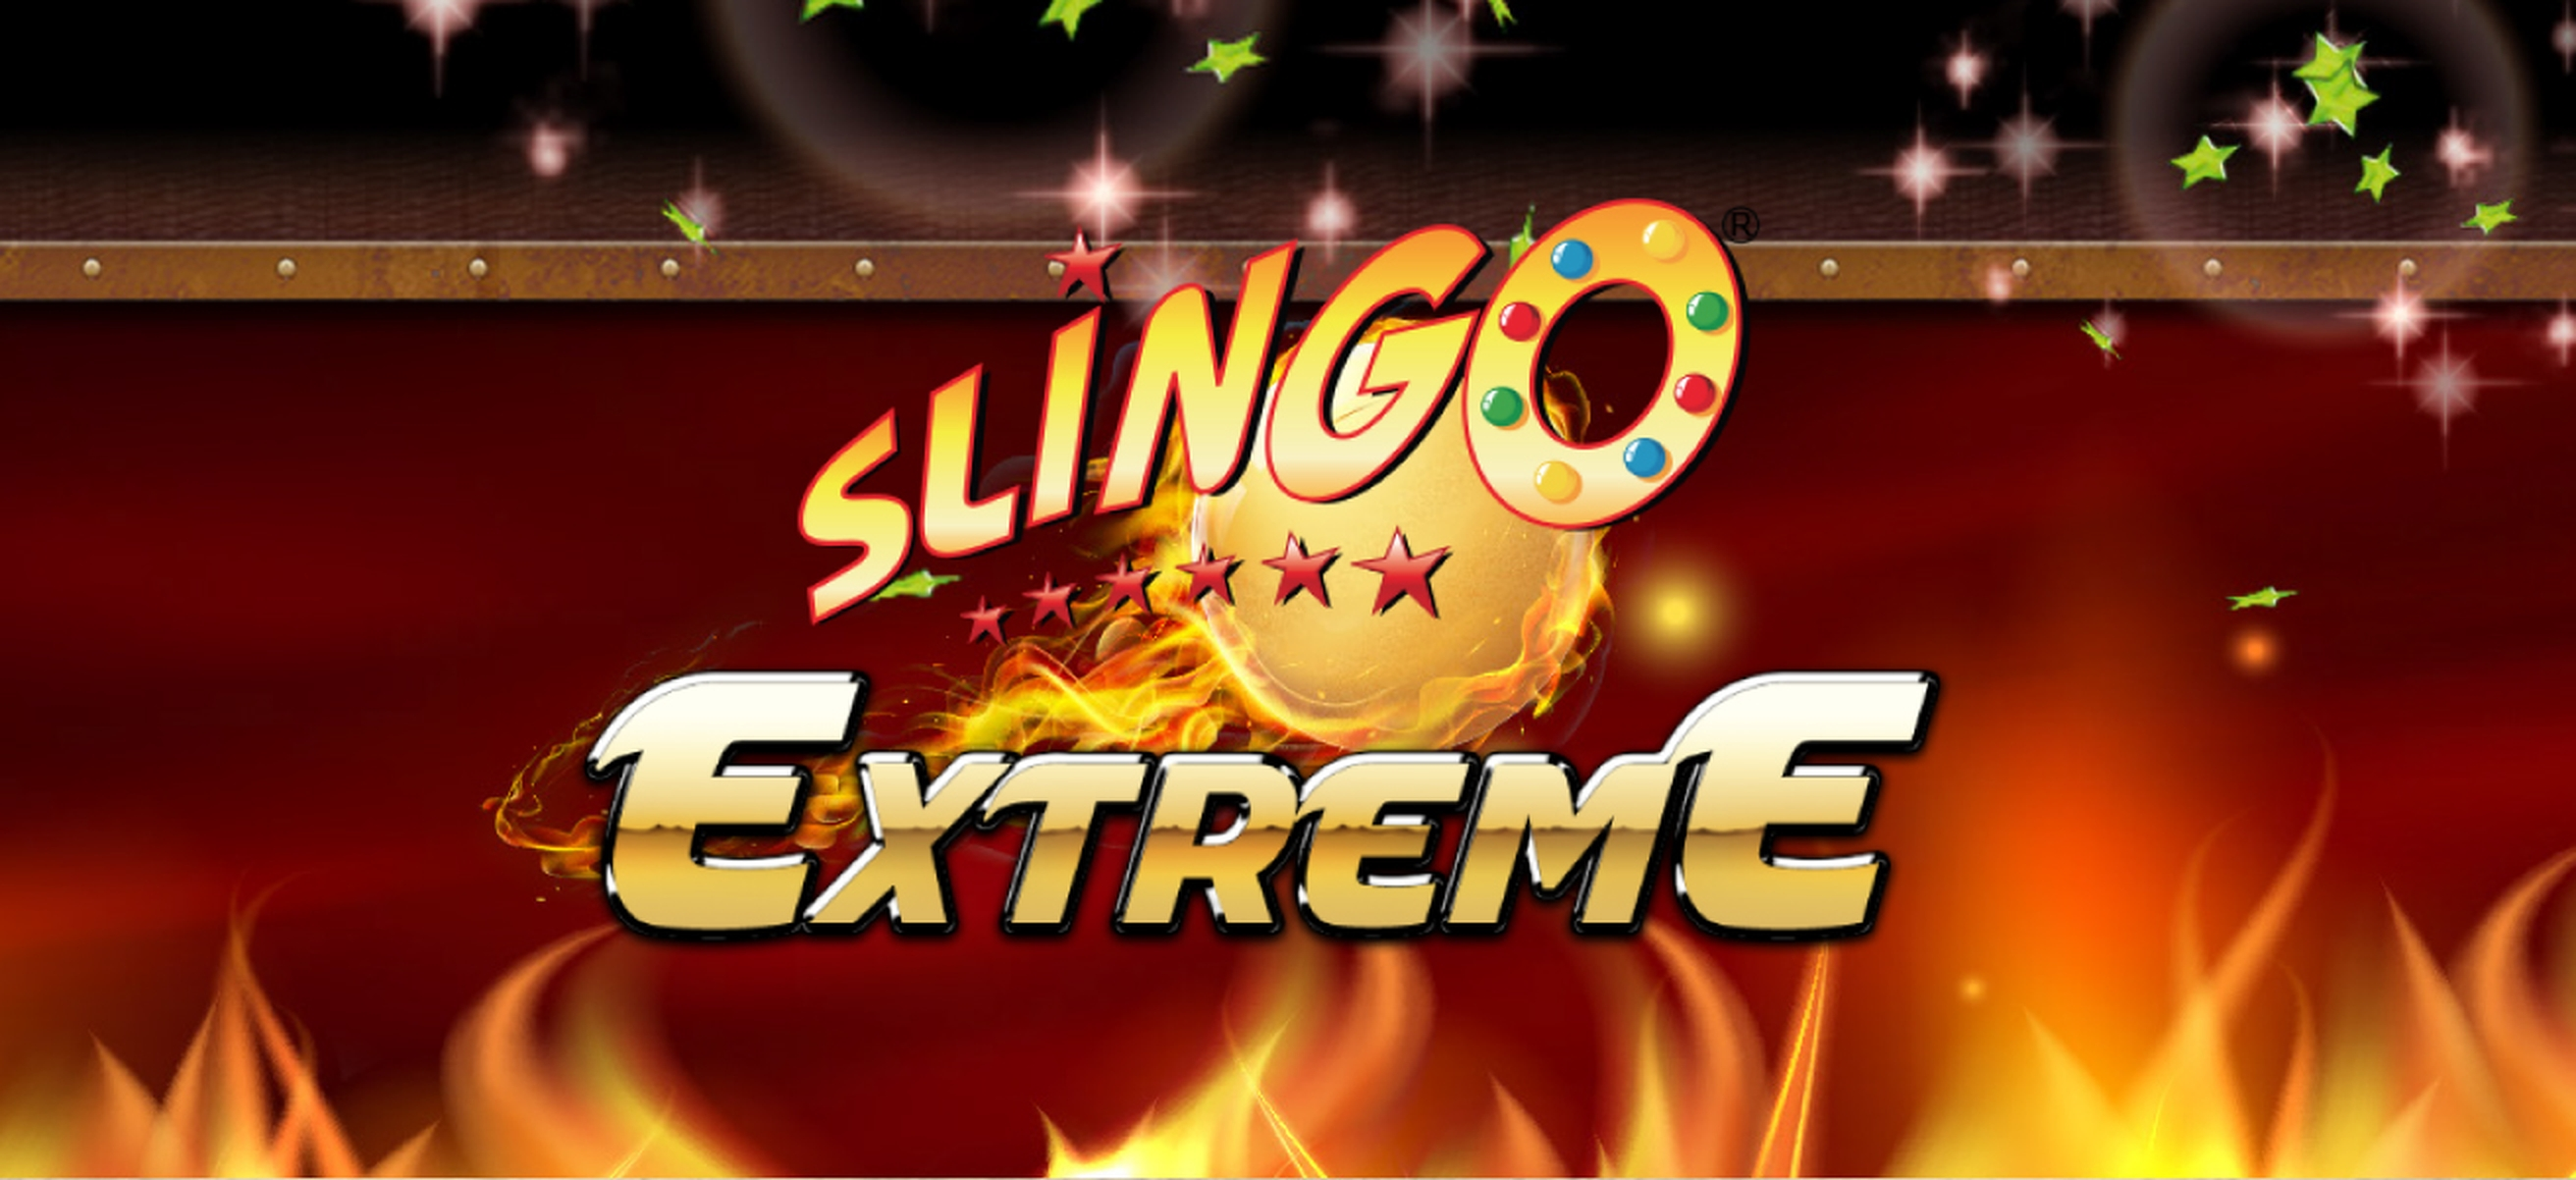 The Slingo Extreme Online Slot Demo Game by Slingo